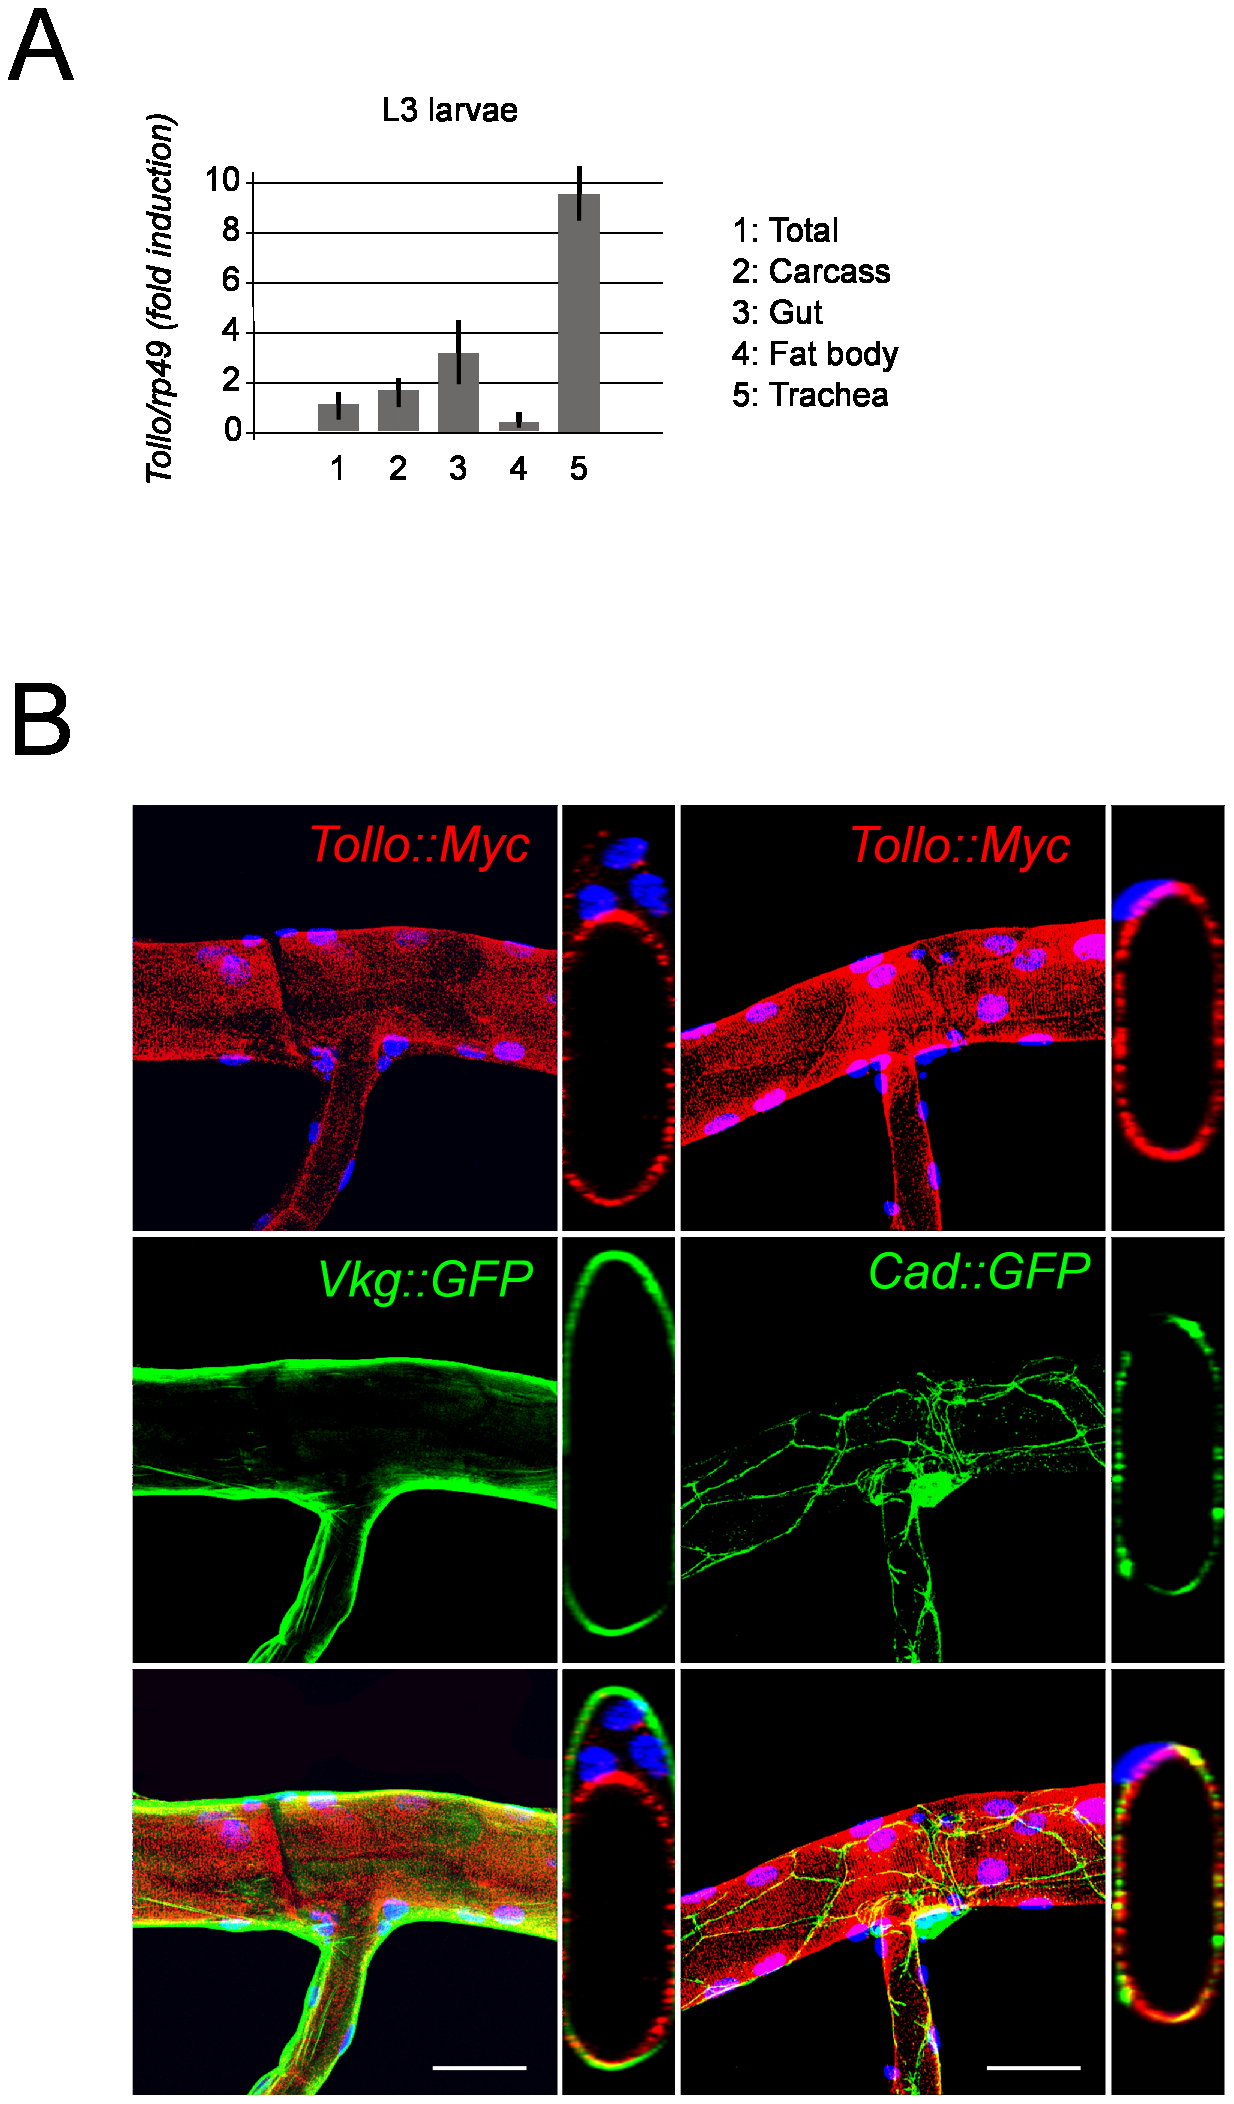 Apical localization of Tollo protein in tracheal cells.